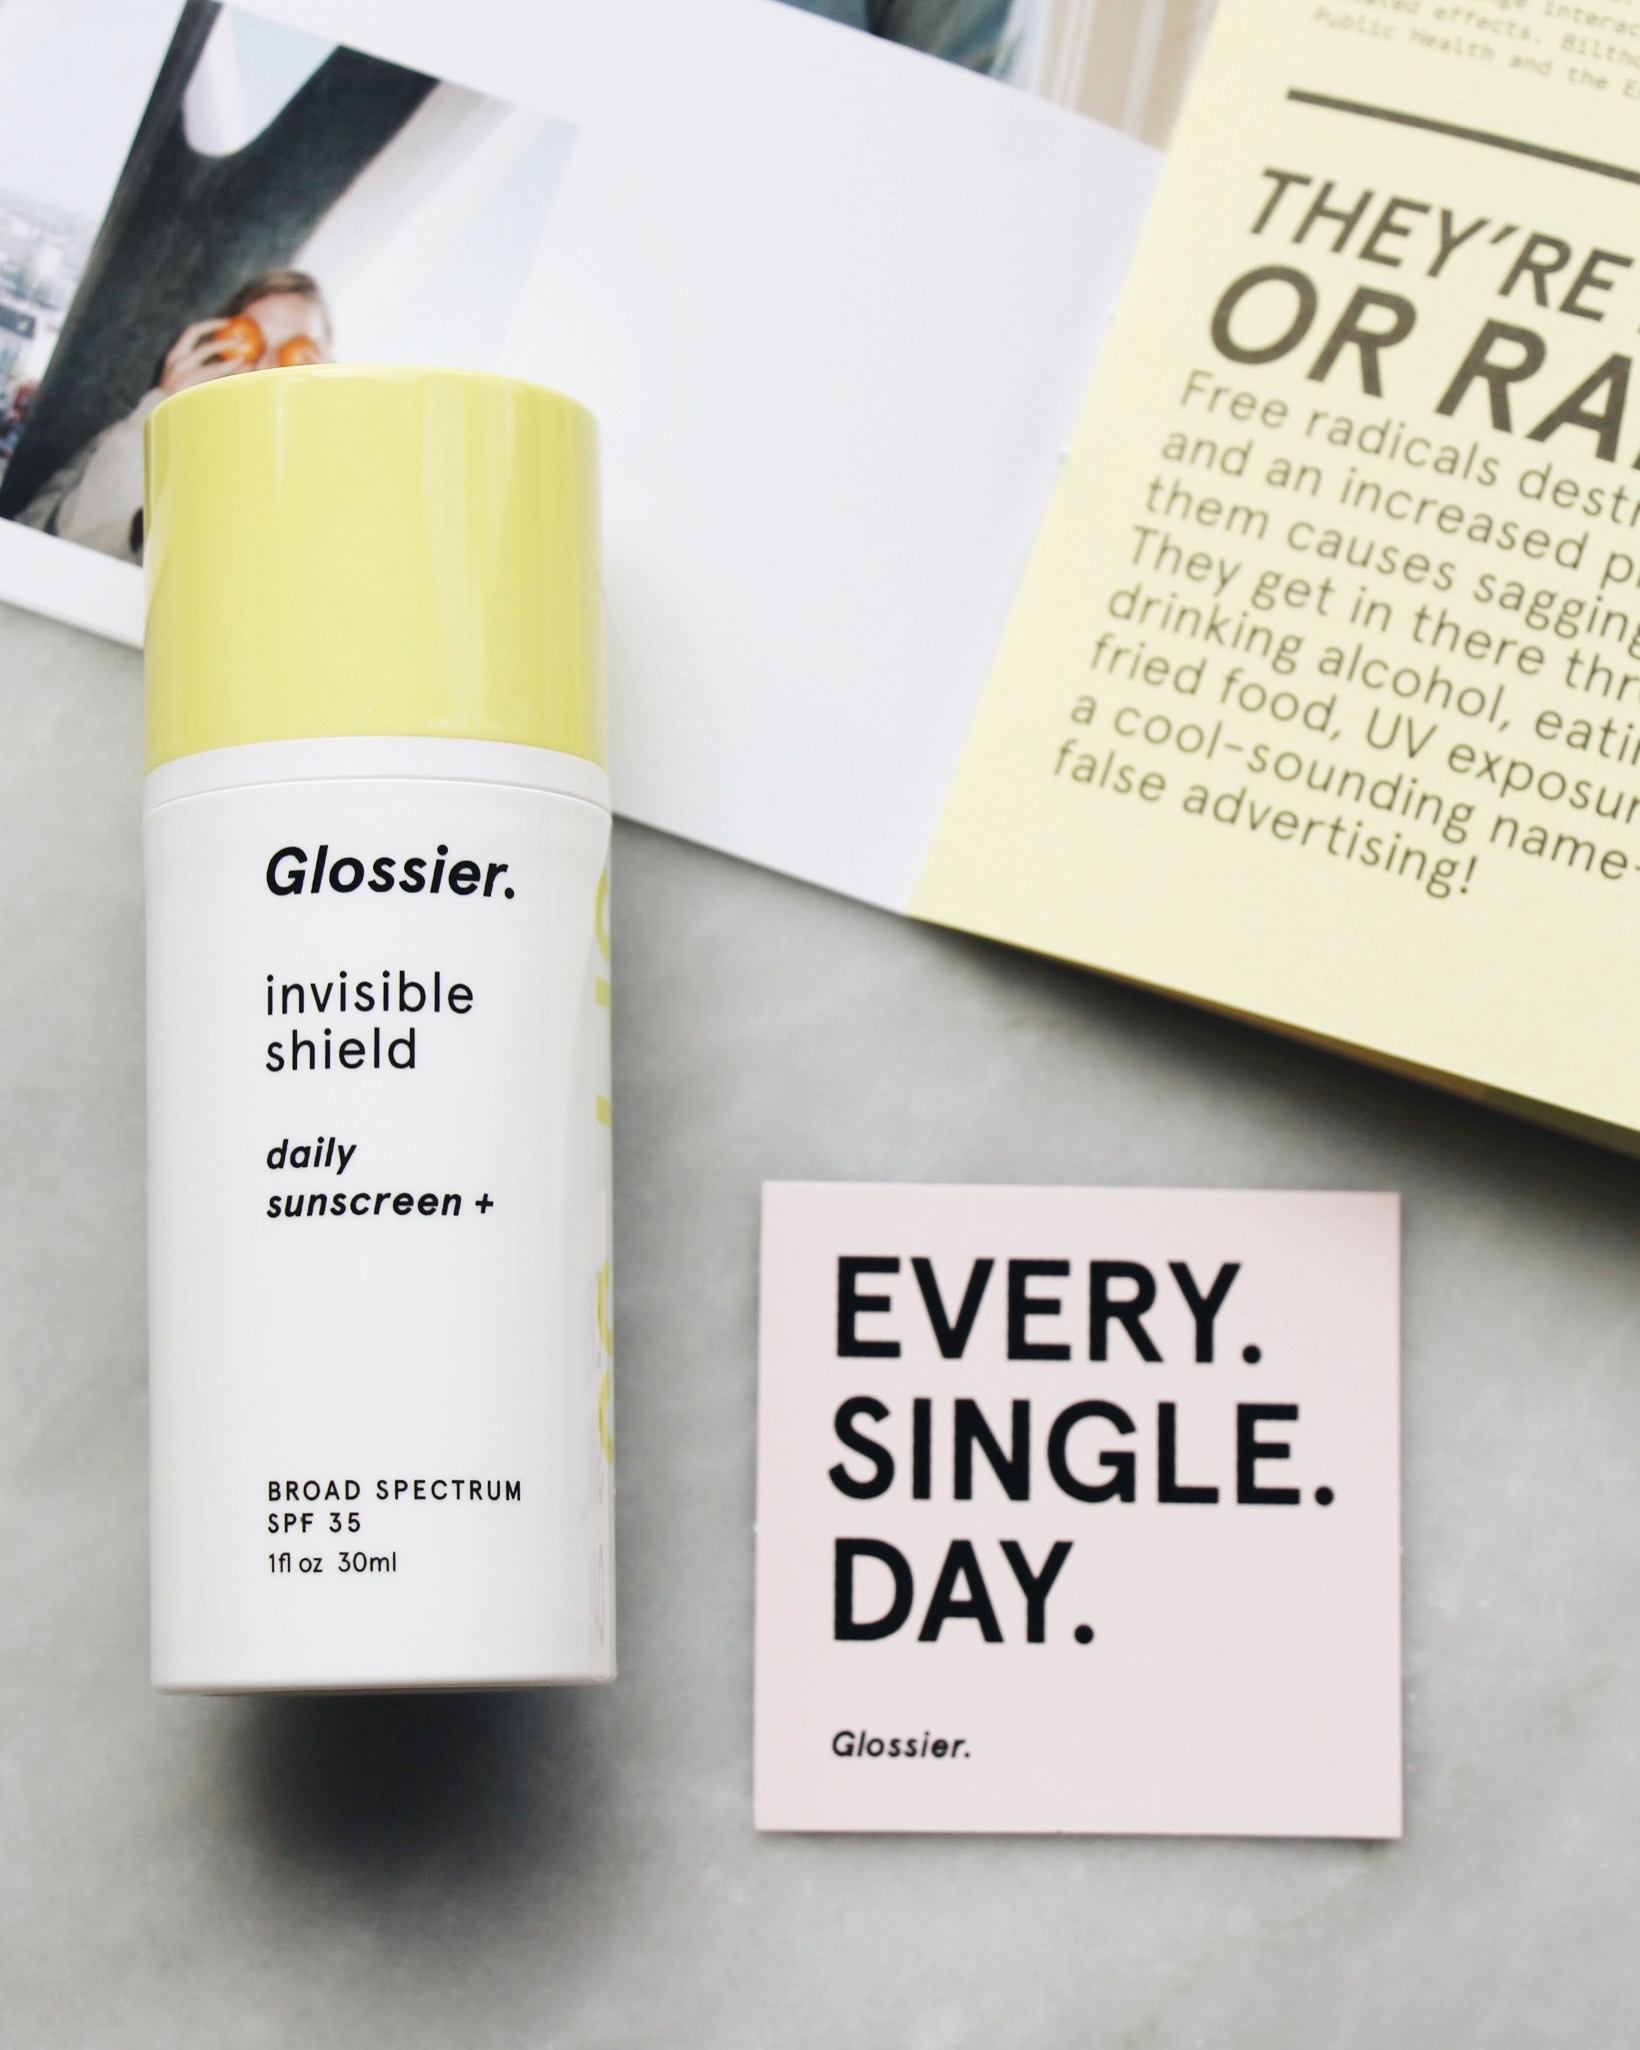 Glossier Invisible Shield Sunscreen Review, Glossier Sunscreen, Glossier Invisible Shield, Invisible Shield Review, Glossier Sunscreen Review, Glossier, Glossier Invisible Shield SPF 35, Glossier Daily Sunscreen, Glossier Discount